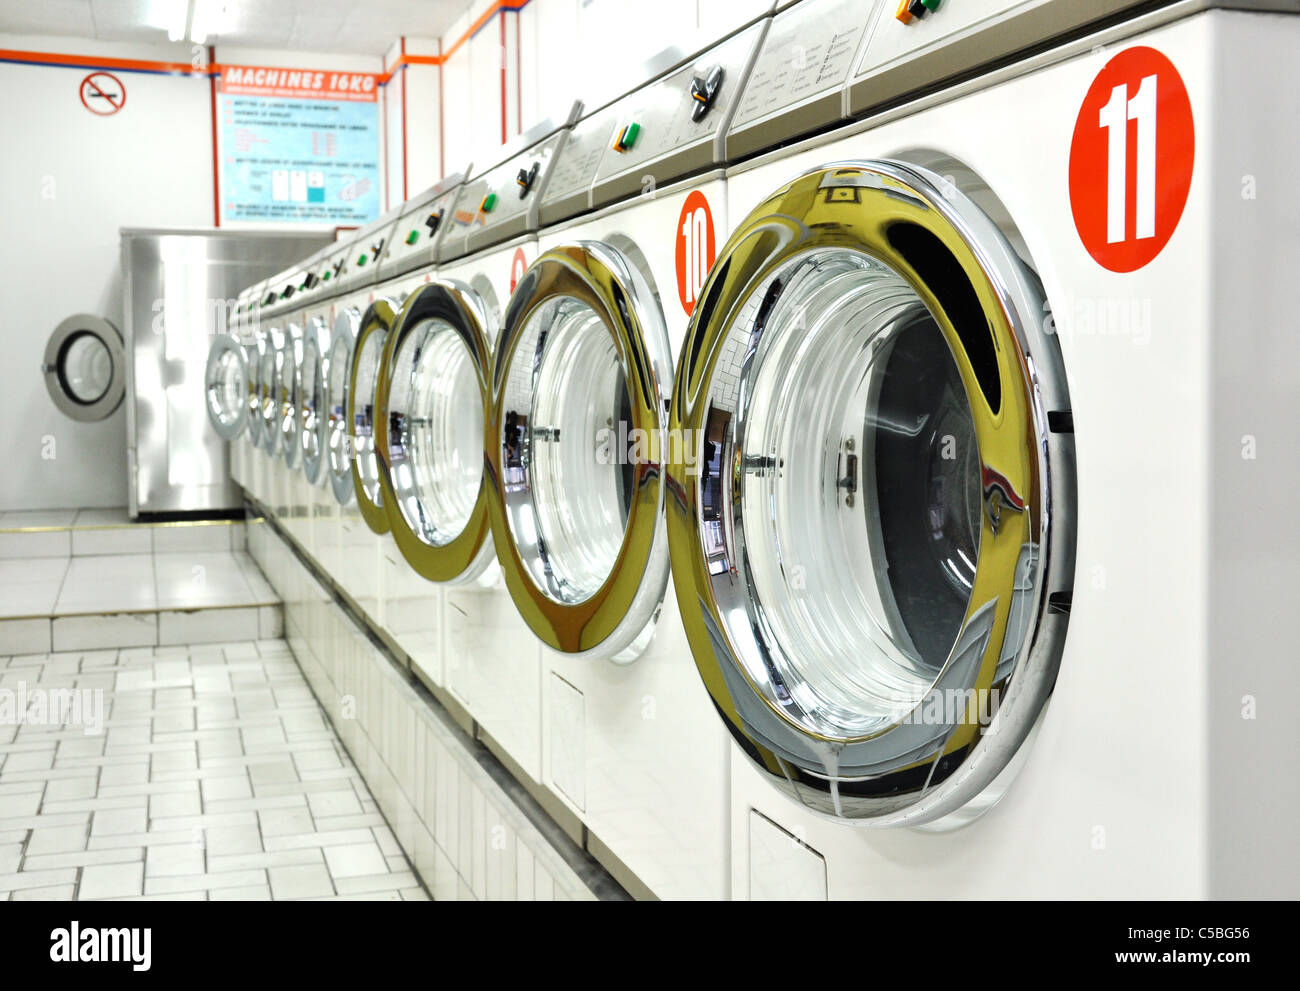 Row of washing machines in a laundrette - Stock Image